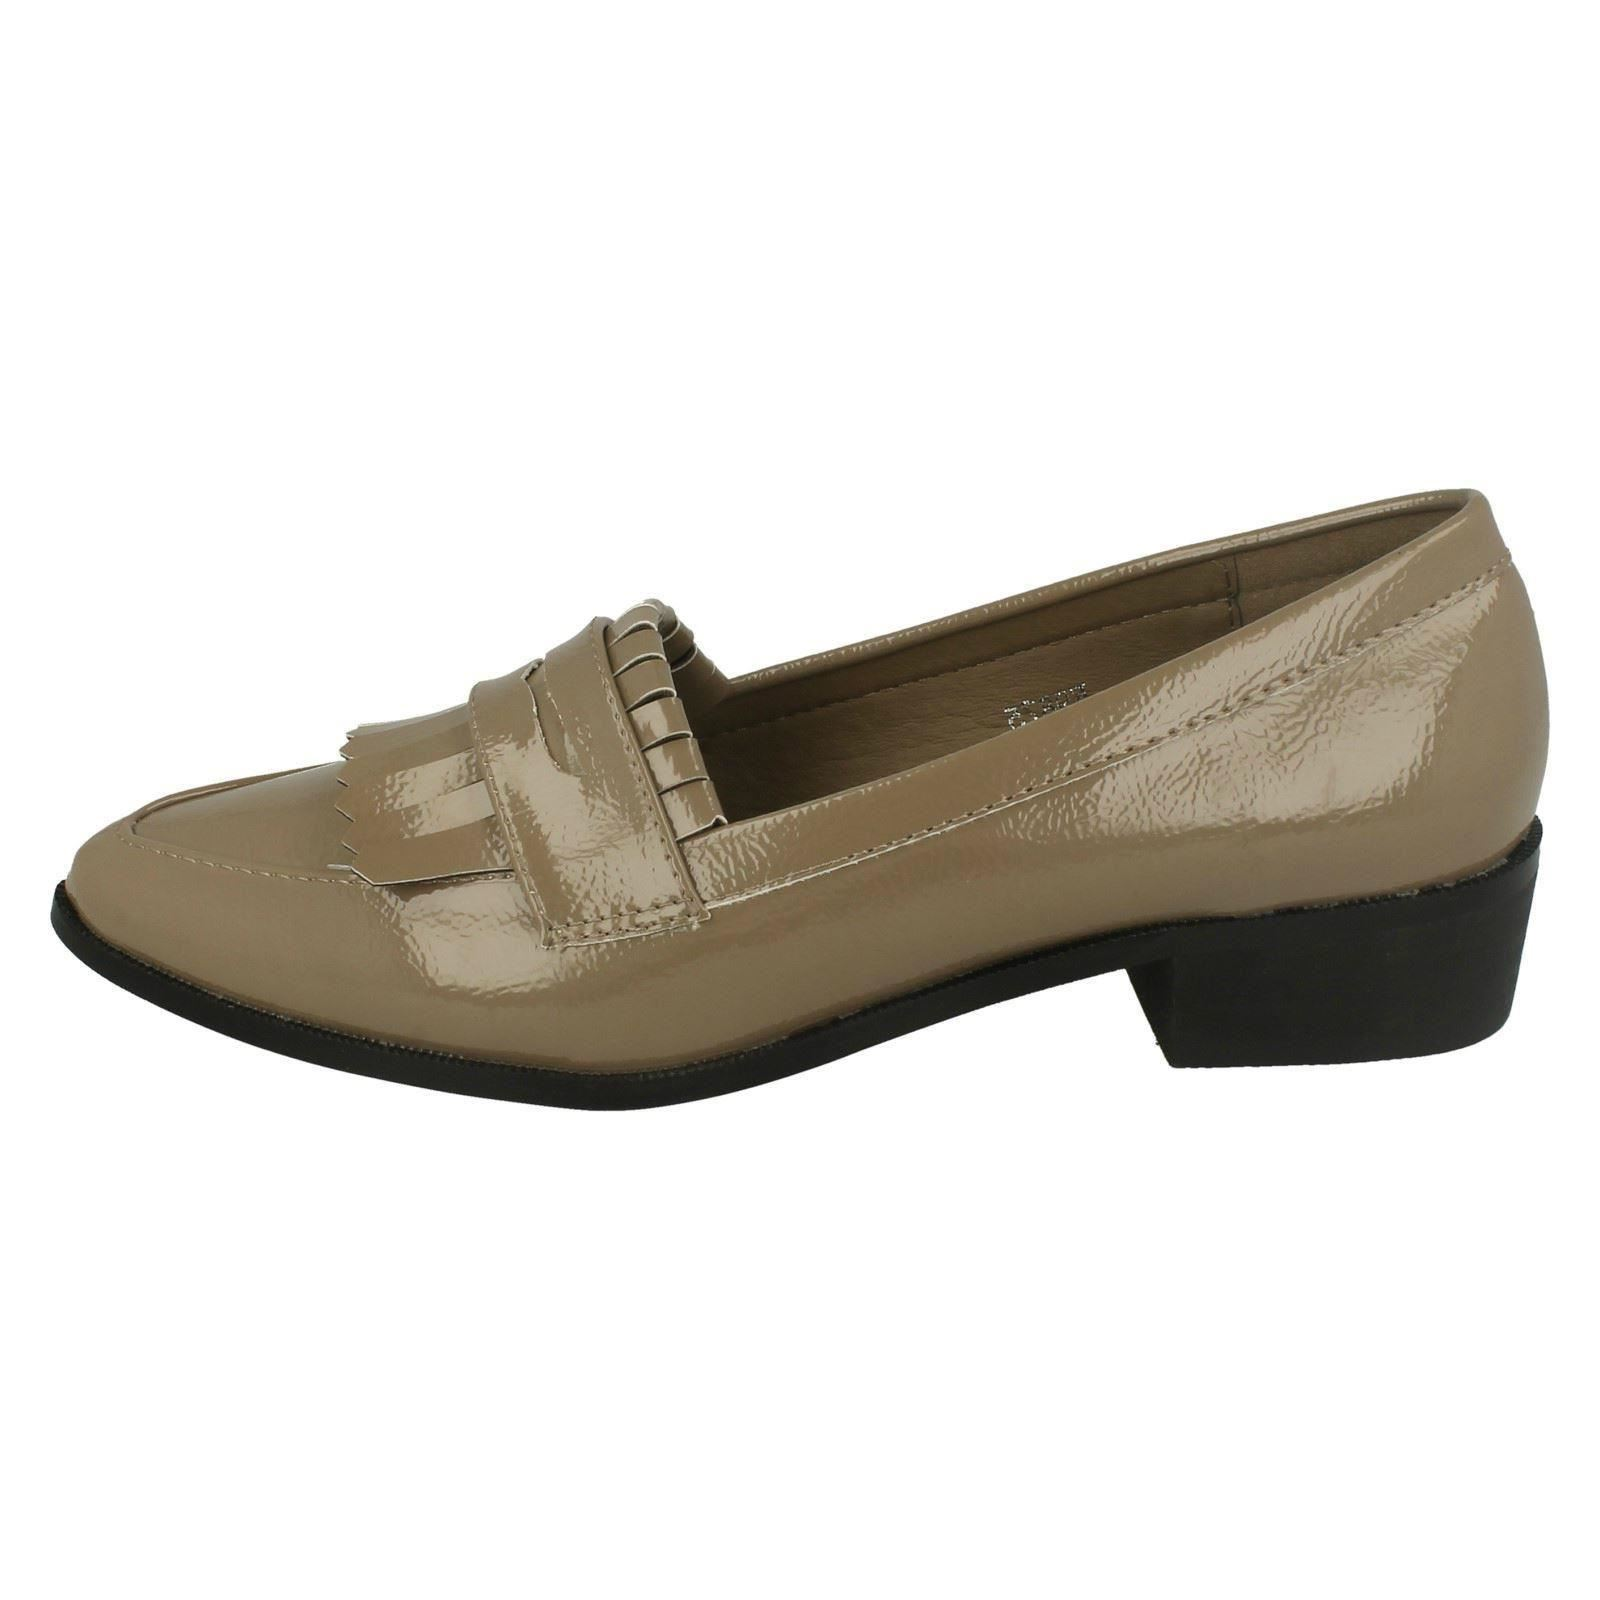 Halbschuhe & Ballerinas Damenschuhe Ladies Spot On Pointed Toe Loafers